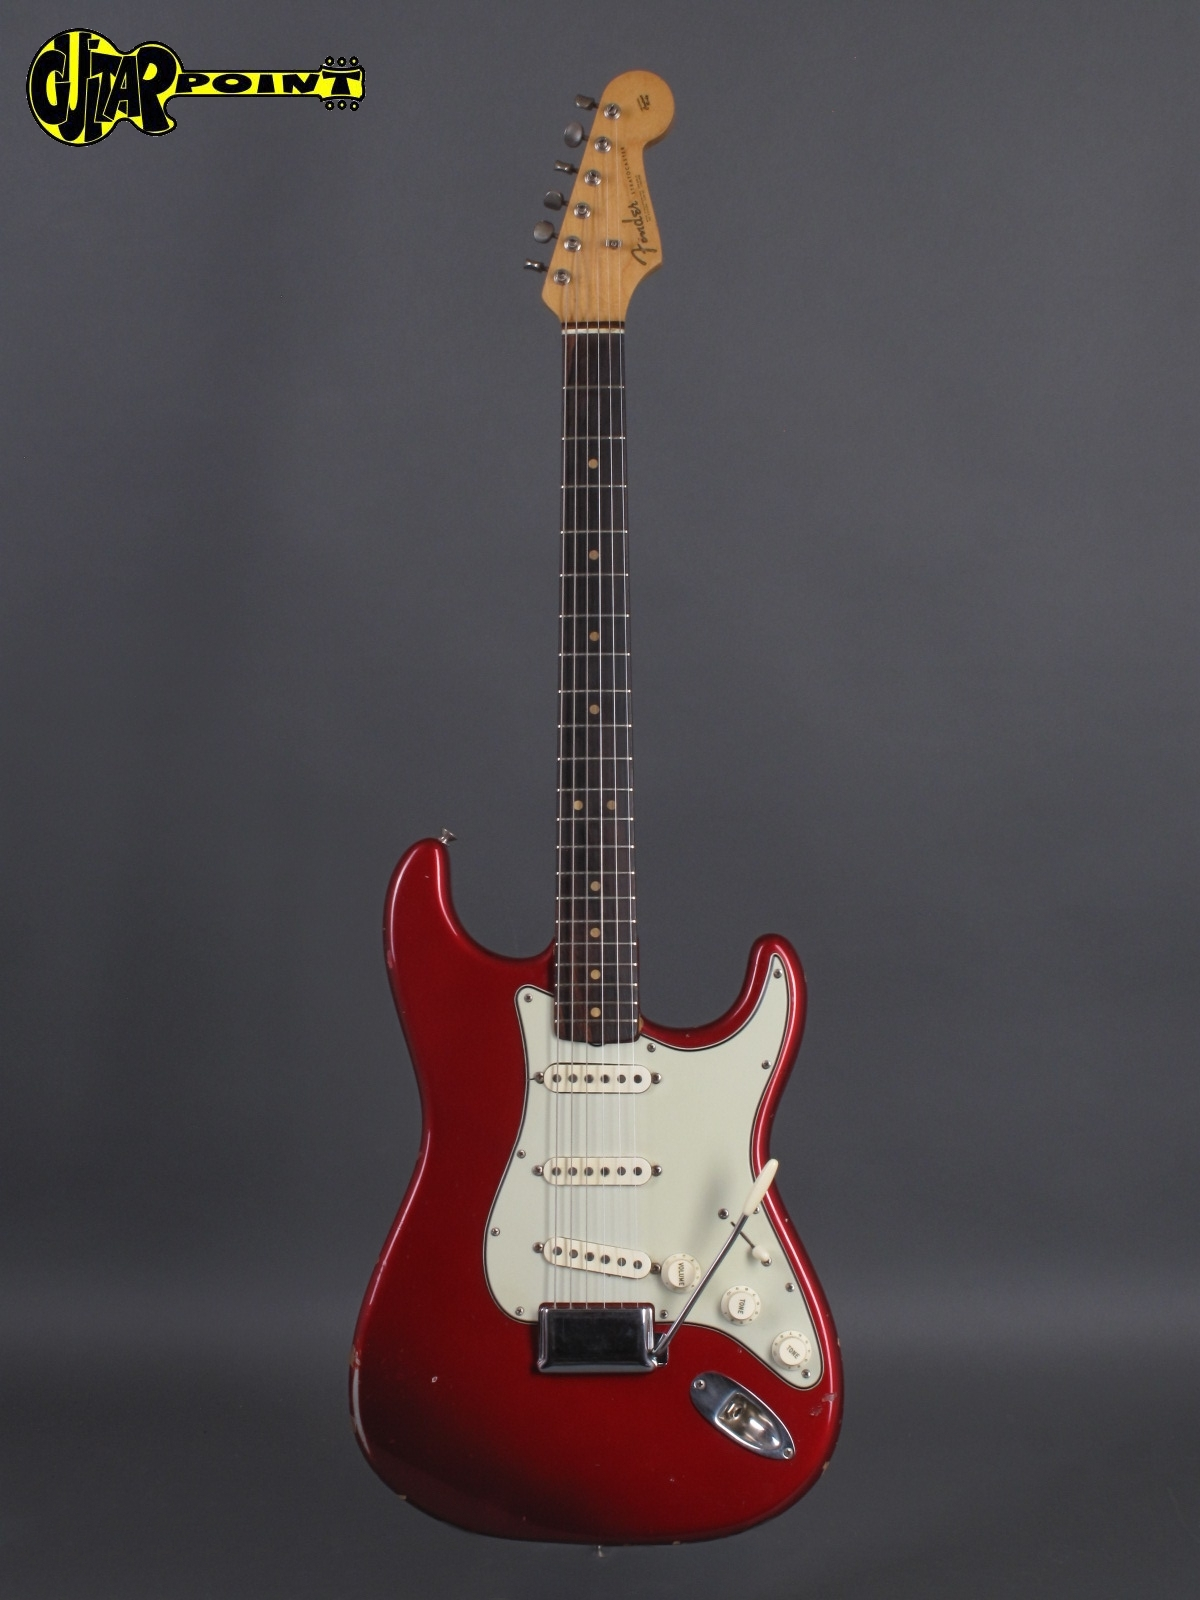 fender stratocaster 1963 candy apple red guitar for sale guitarpoint. Black Bedroom Furniture Sets. Home Design Ideas